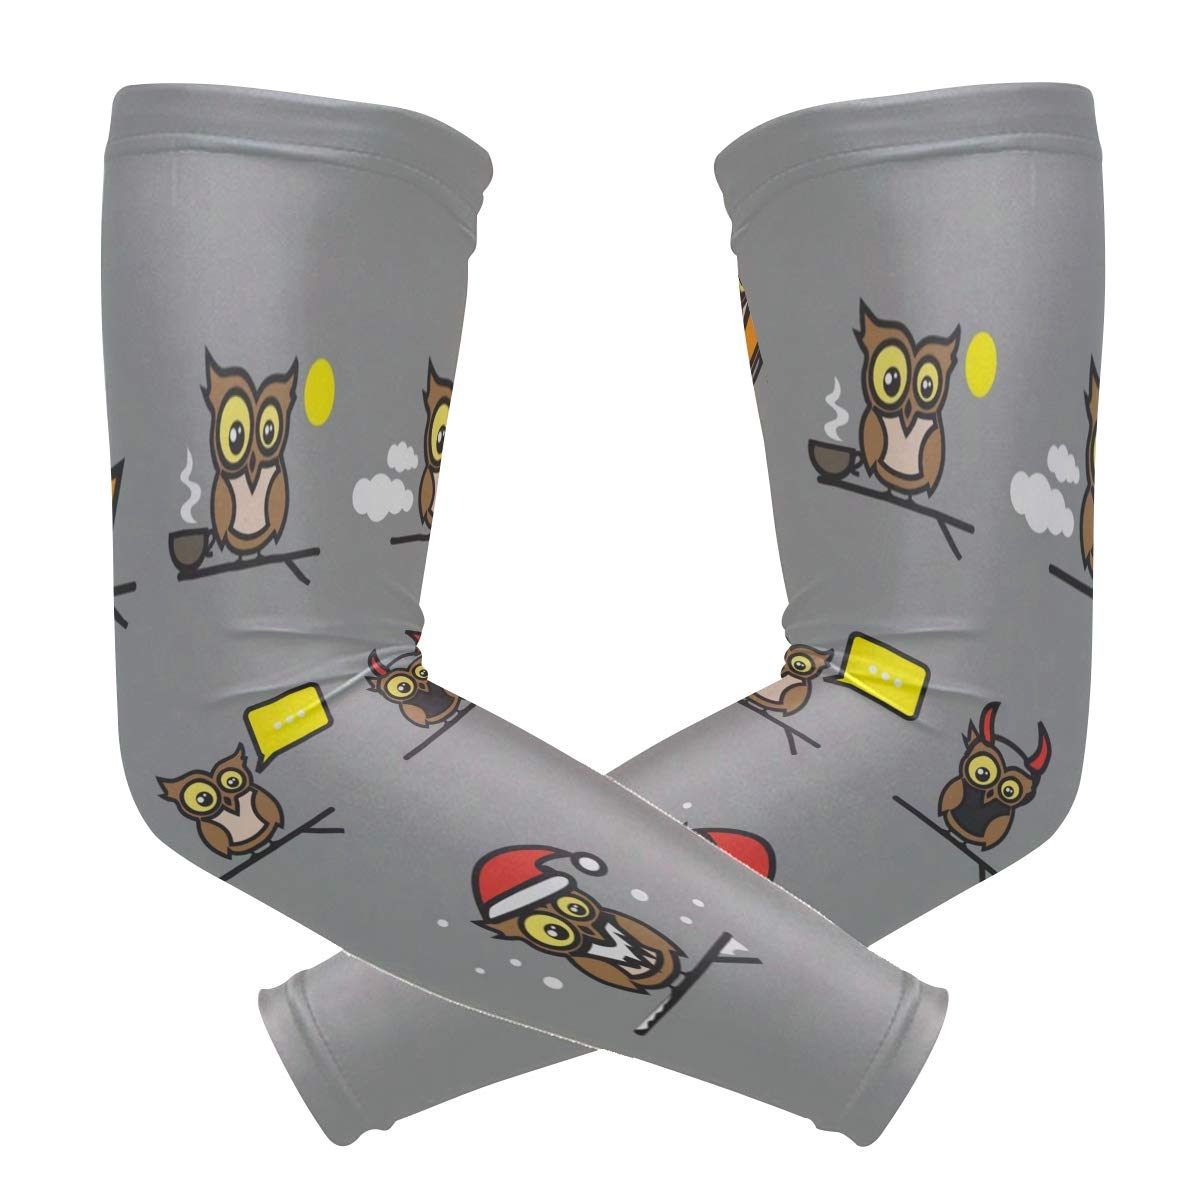 Arm Sleeves Colorful Owl Man Baseball Long Cooling Sleeves Sun UV Compression Arm Covers